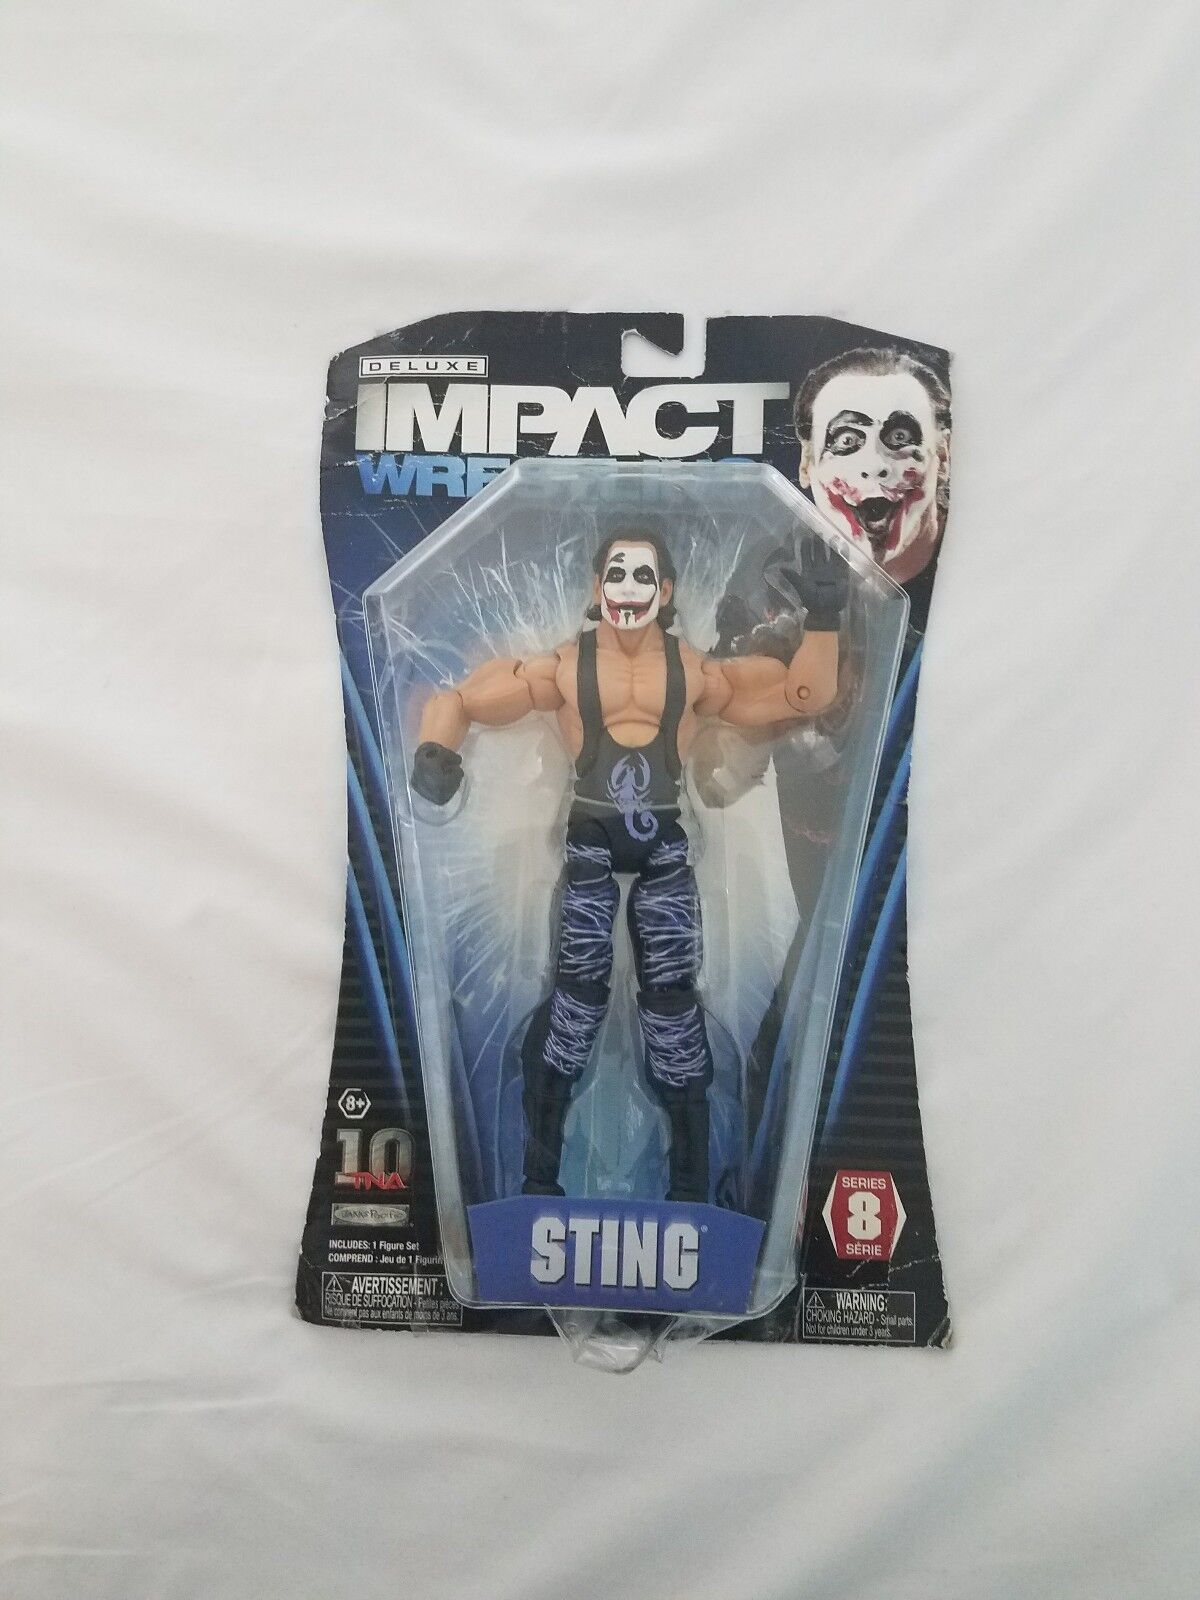 TNA Deluxe Impact Sting Series 8 Rare sting